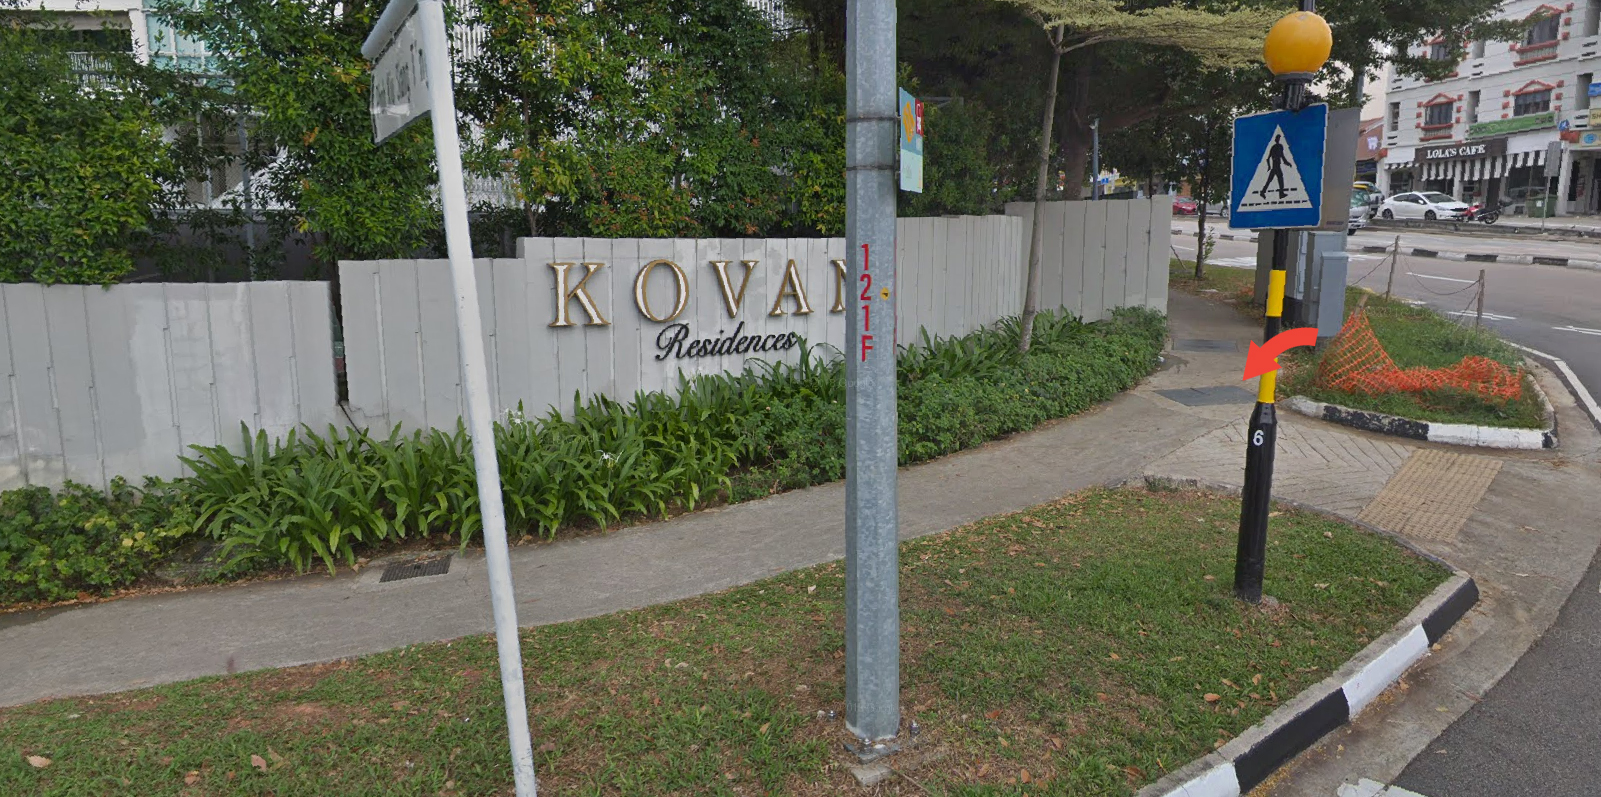 Woman Falls Into Kovan Manhole & Allegedly Suffers Multiple Injuries, Sues PUB For $5 Million